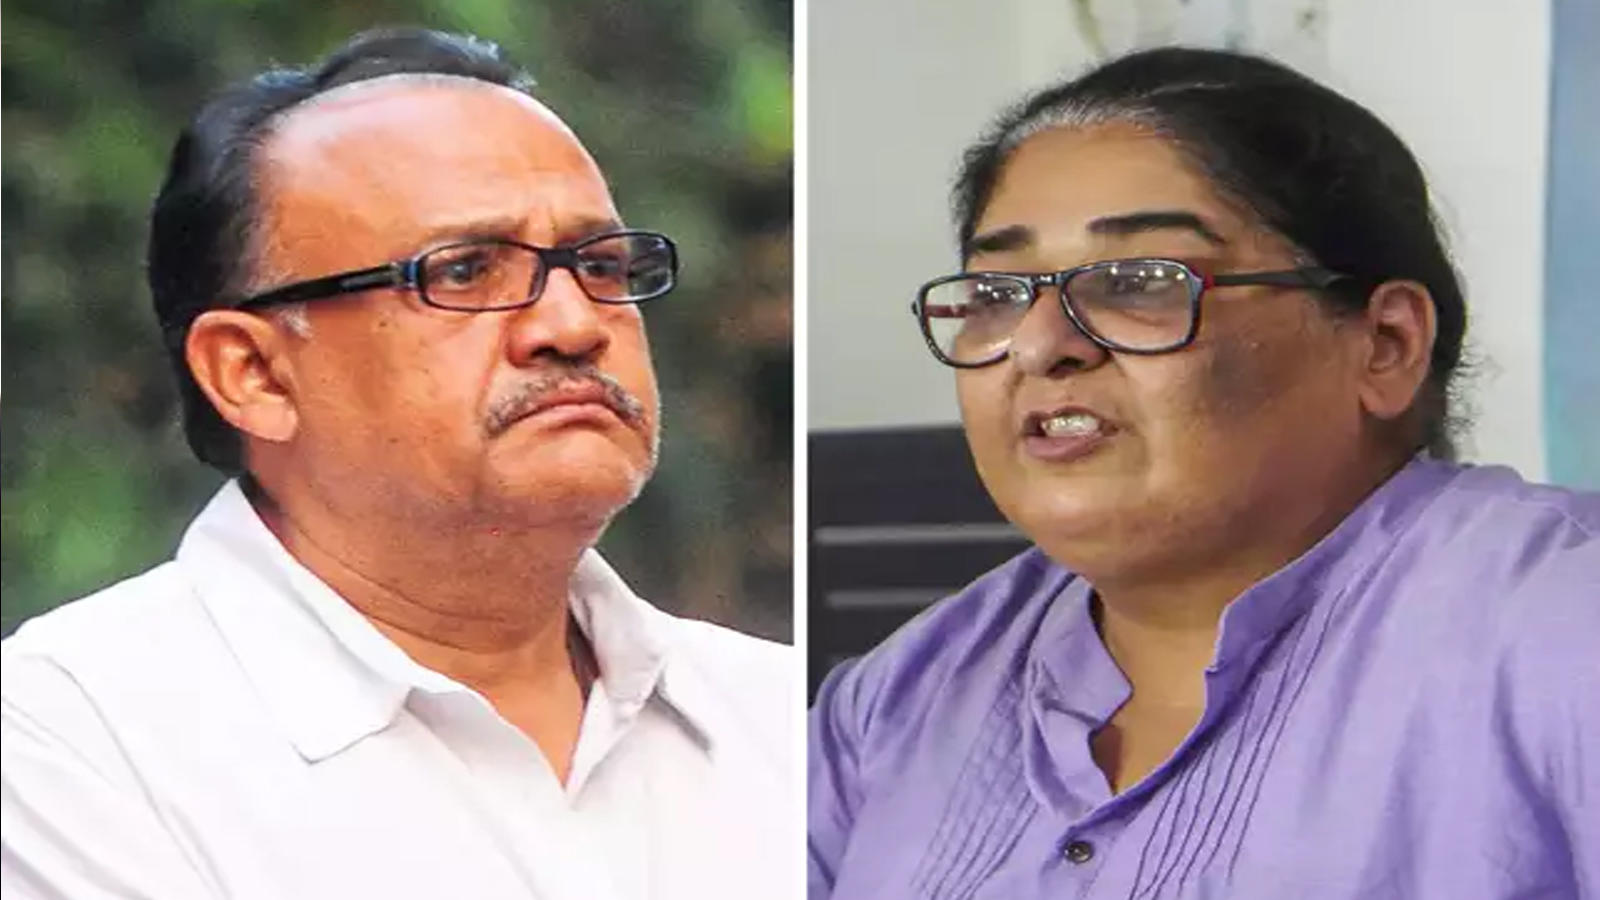 #MeToo movement: Vinta Nanda's allegations are a figment of imagination, says Alok Nath's lawyer